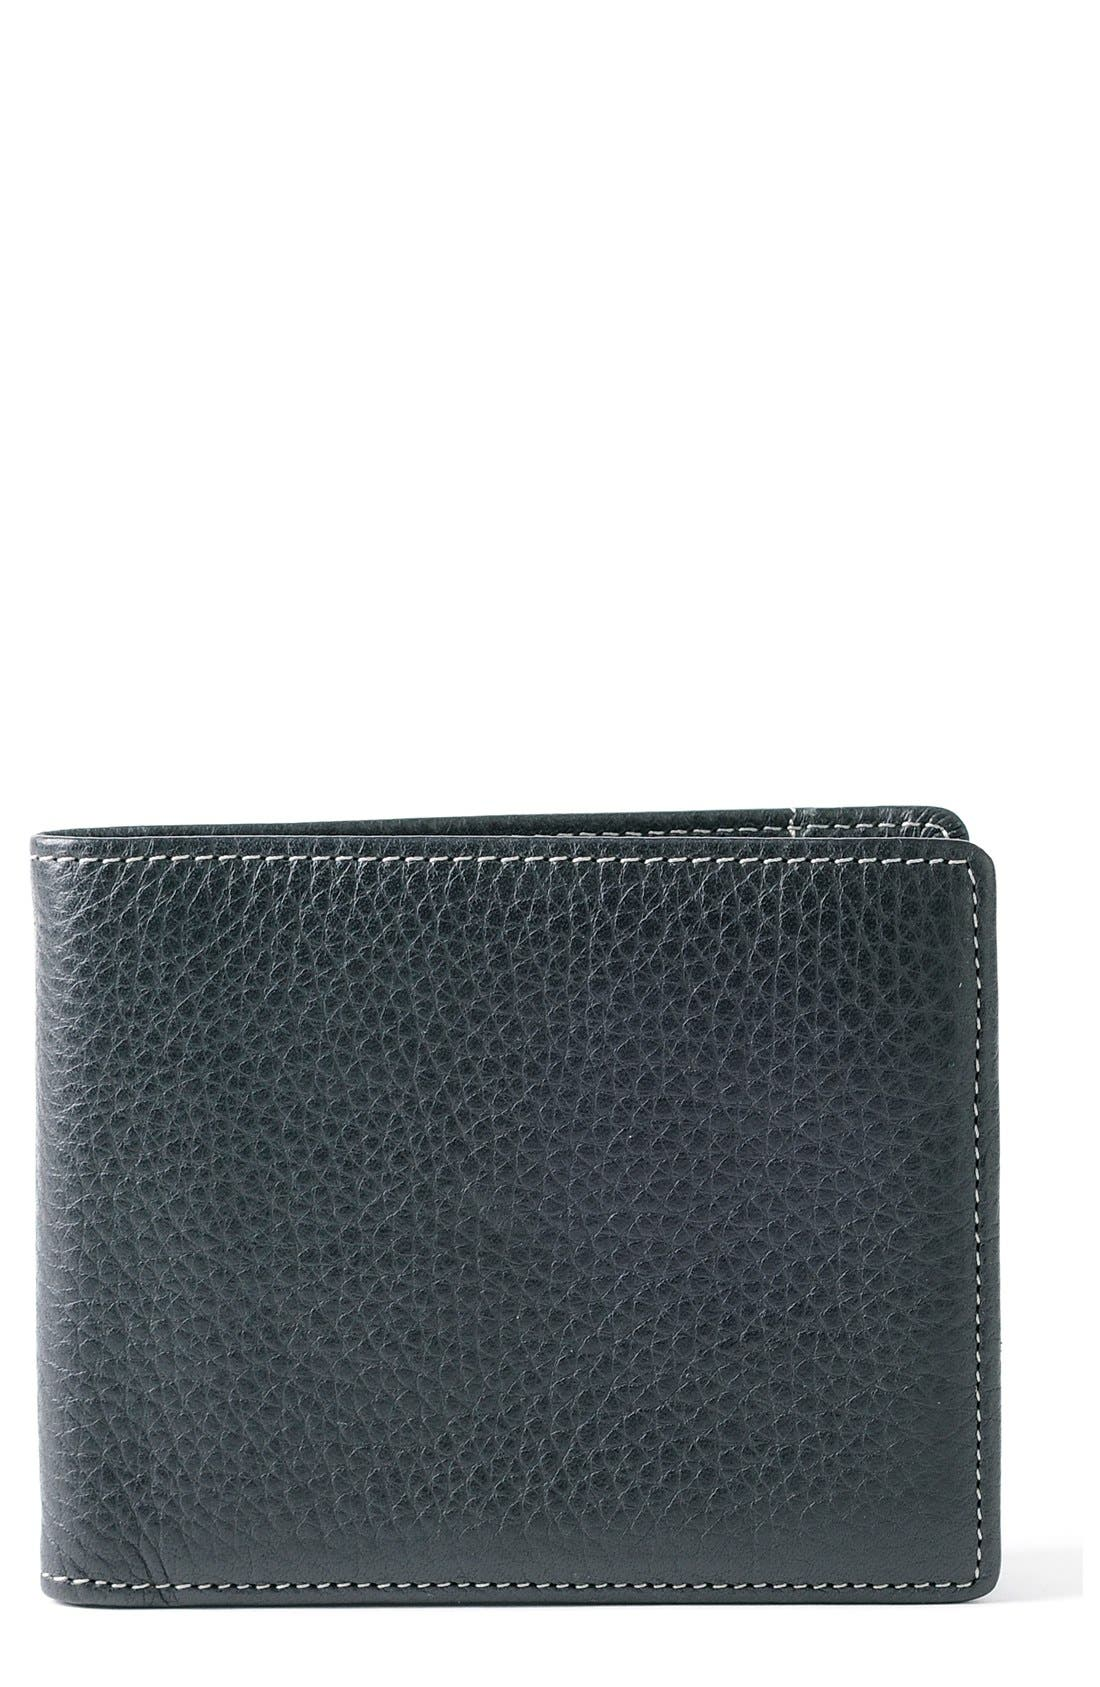 'Tyler' RFID Wallet,                         Main,                         color, BLACK